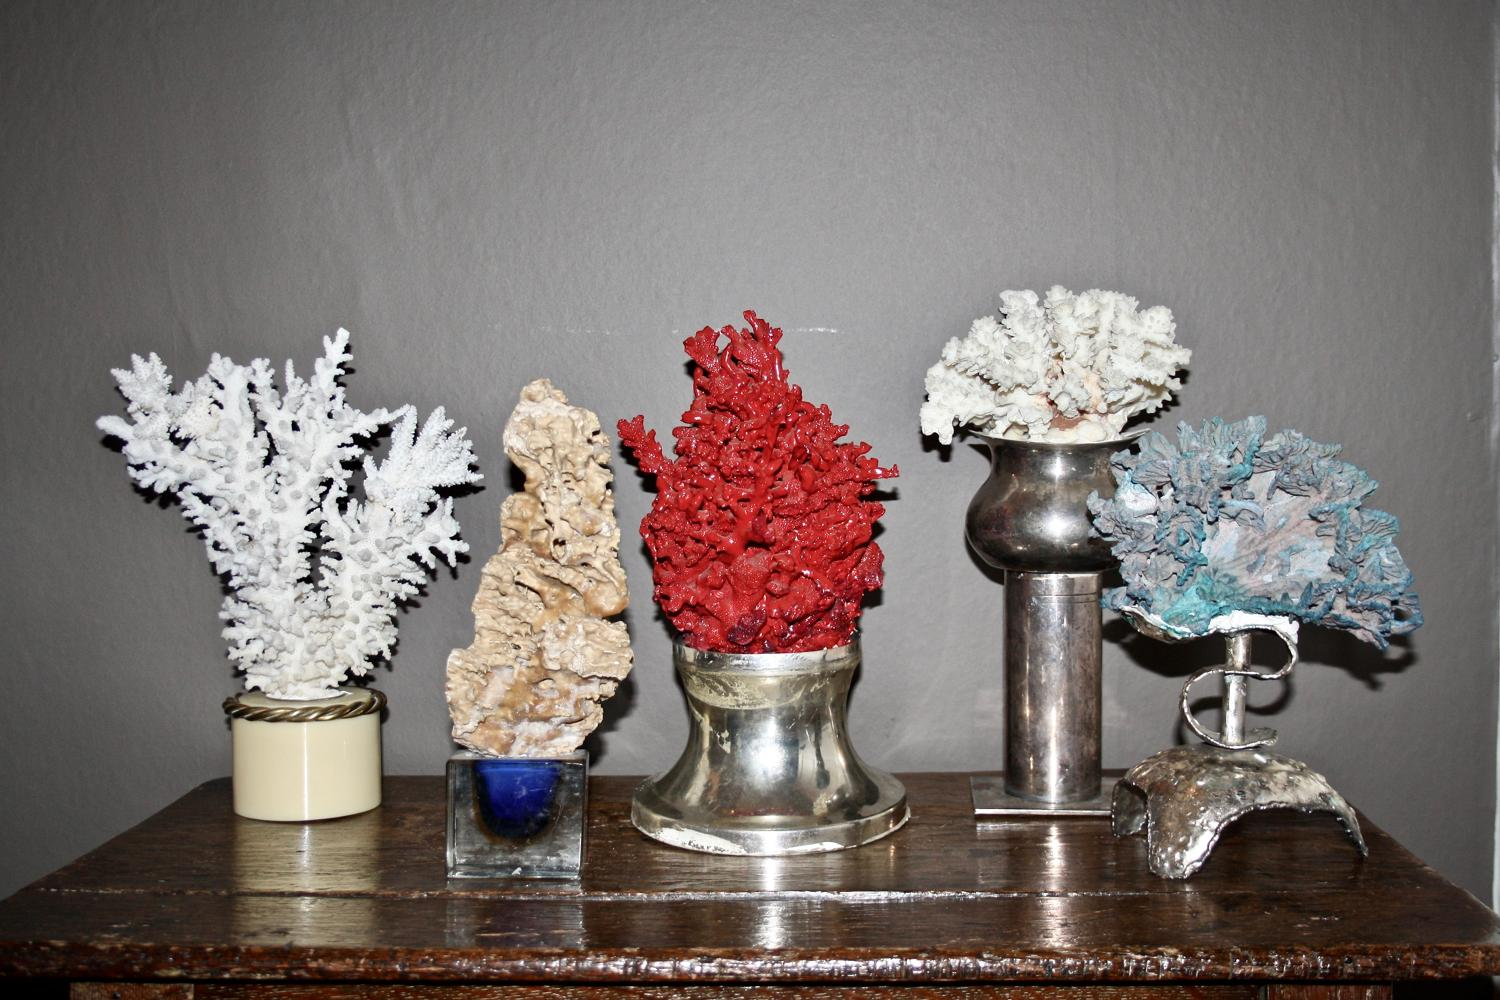 Decorative coral displays